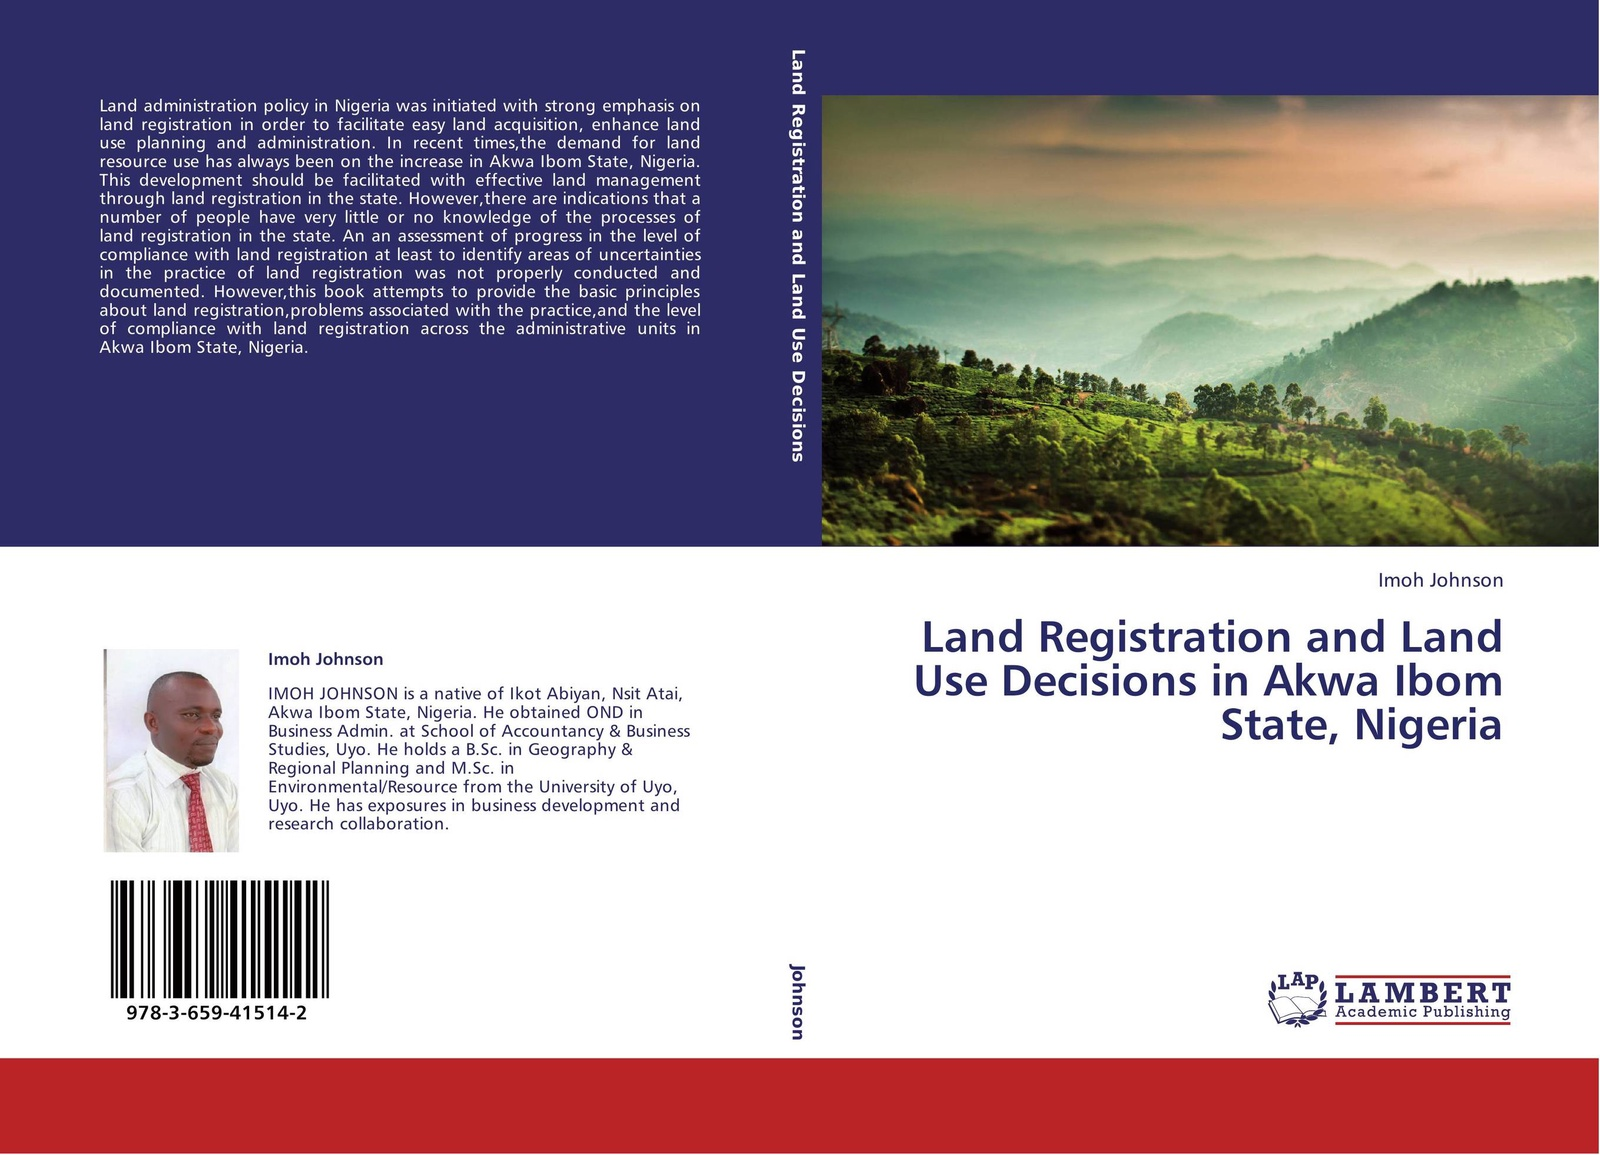 Imoh Johnson Land Registration and Land Use Decisions in Akwa Ibom State, Nigeria